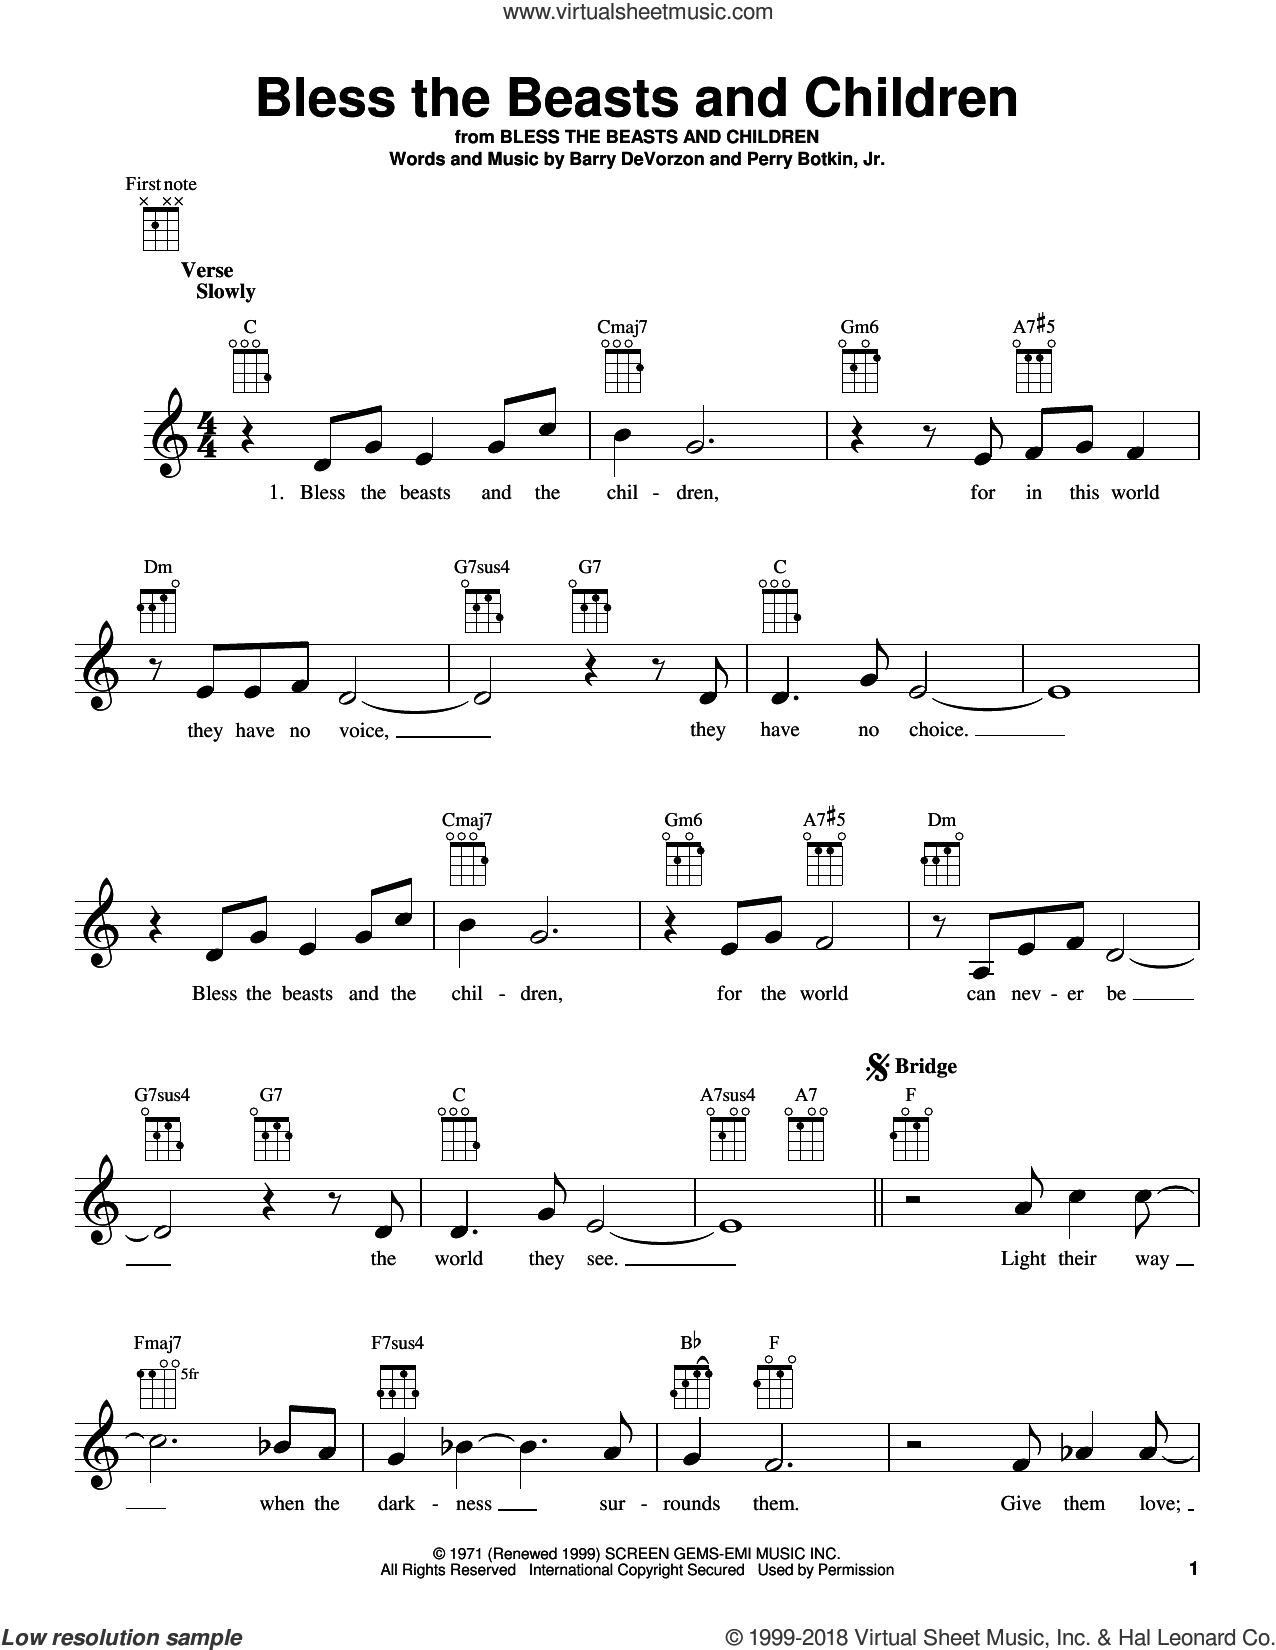 Bless The Beasts And Children sheet music for ukulele by Perry Botkin, Jr.